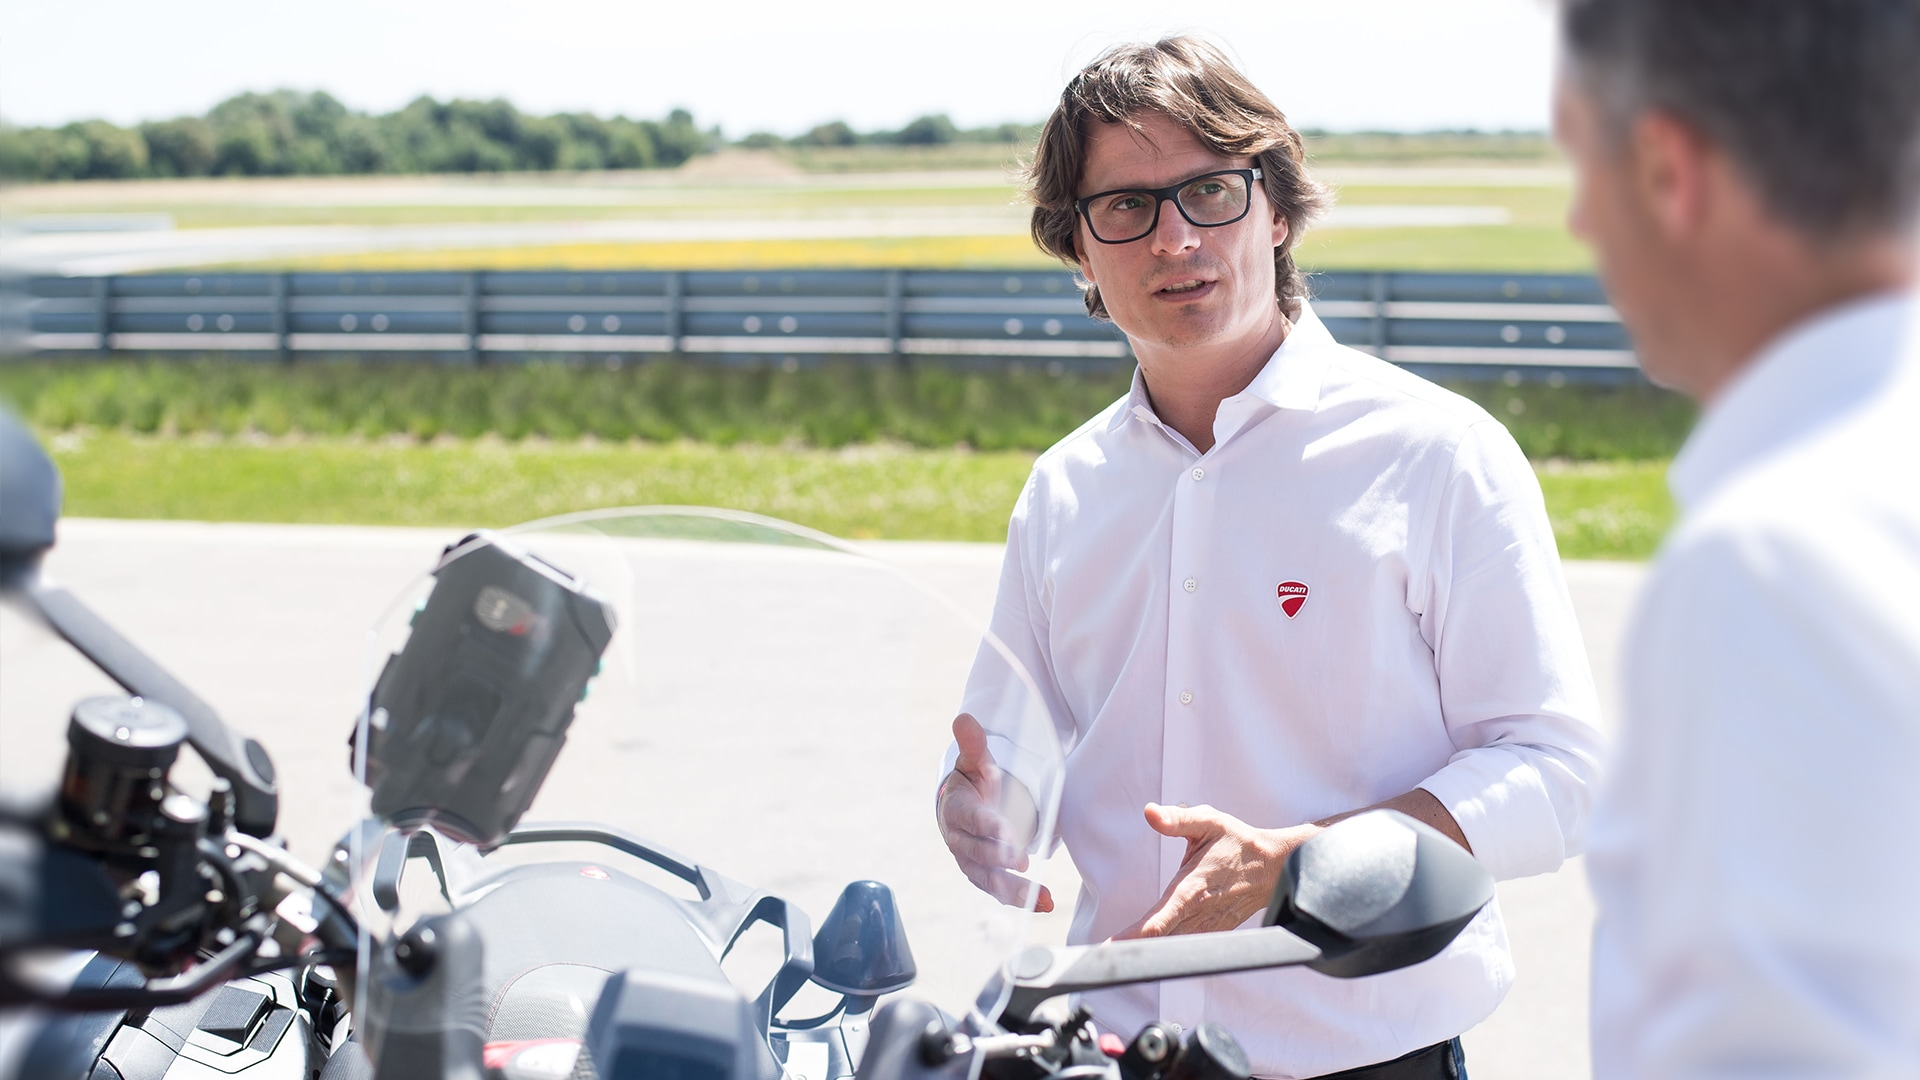 One-third of motorcycle accidents can be avoided with the help of C-V2X technologies, estimates Pierluigi Zampieri, Vehicle Innovation Manager at Ducati.